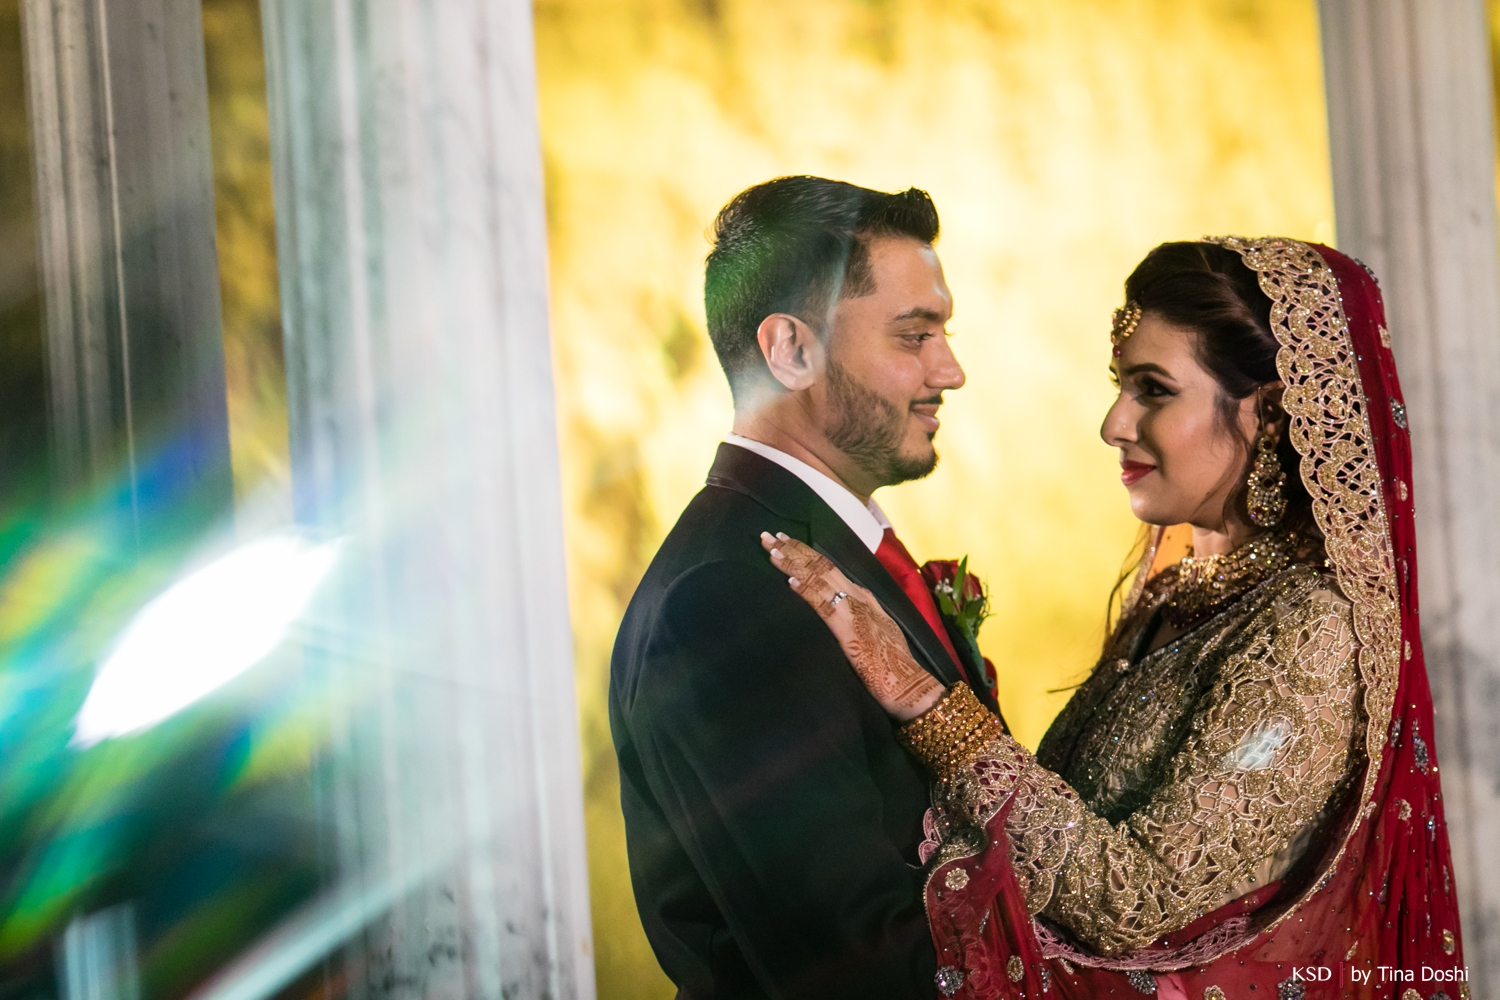 nj_south_asian_wedding_0088